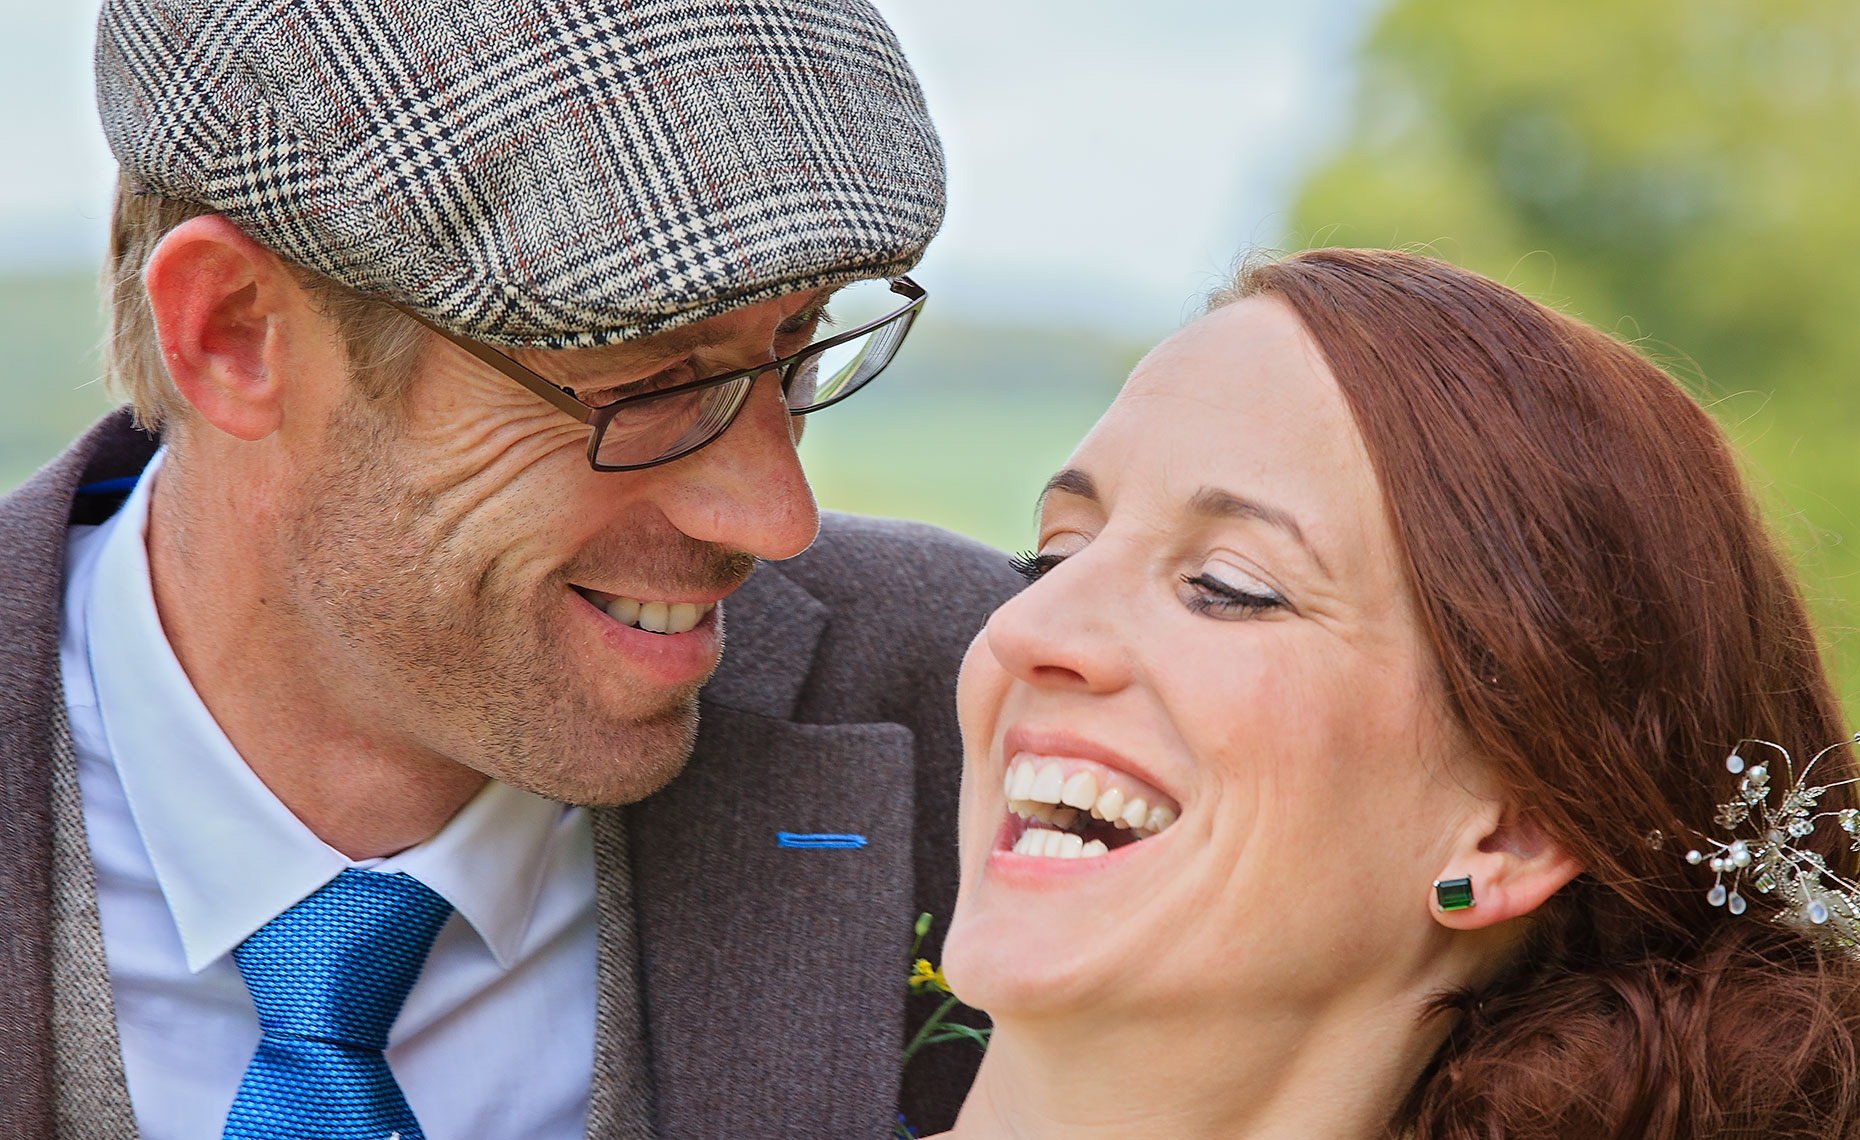 Groom with brown hat cradling smiling bride while laughing